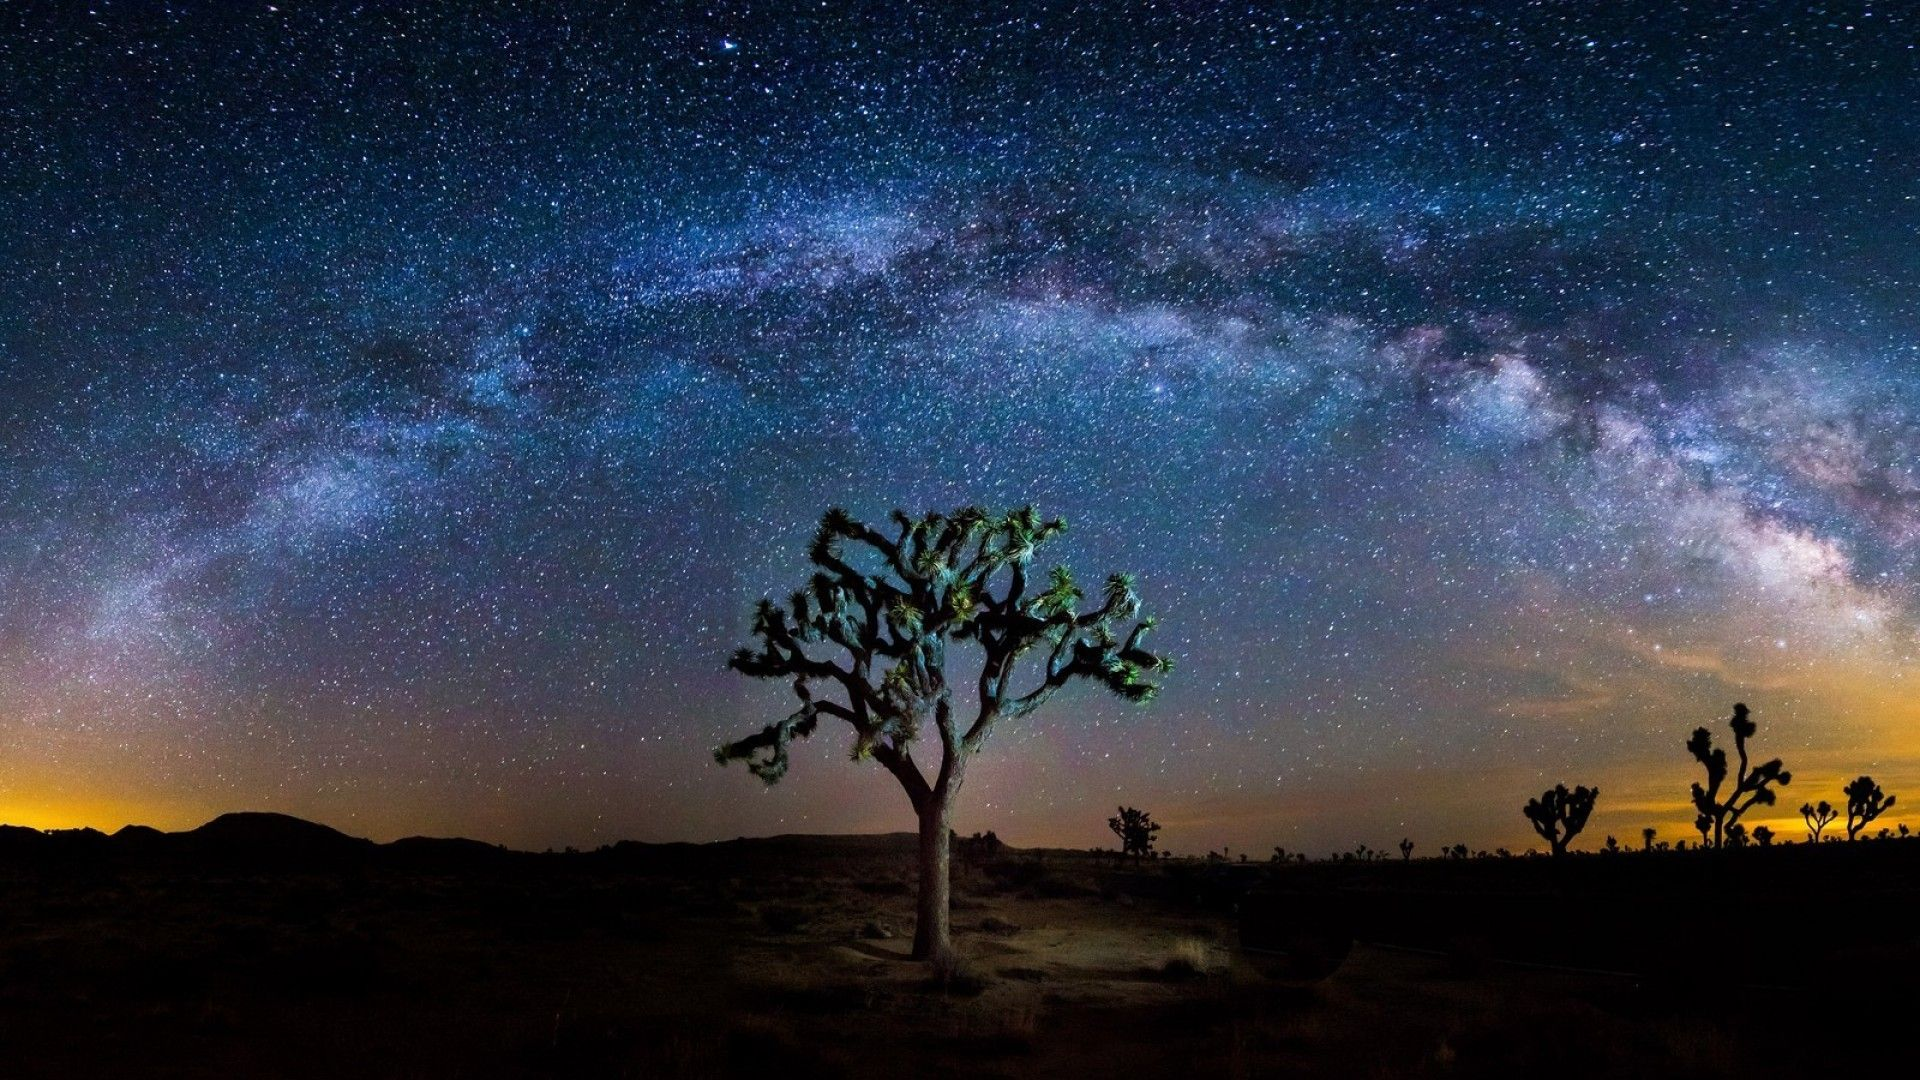 Just another starry night in Joshua Tree.